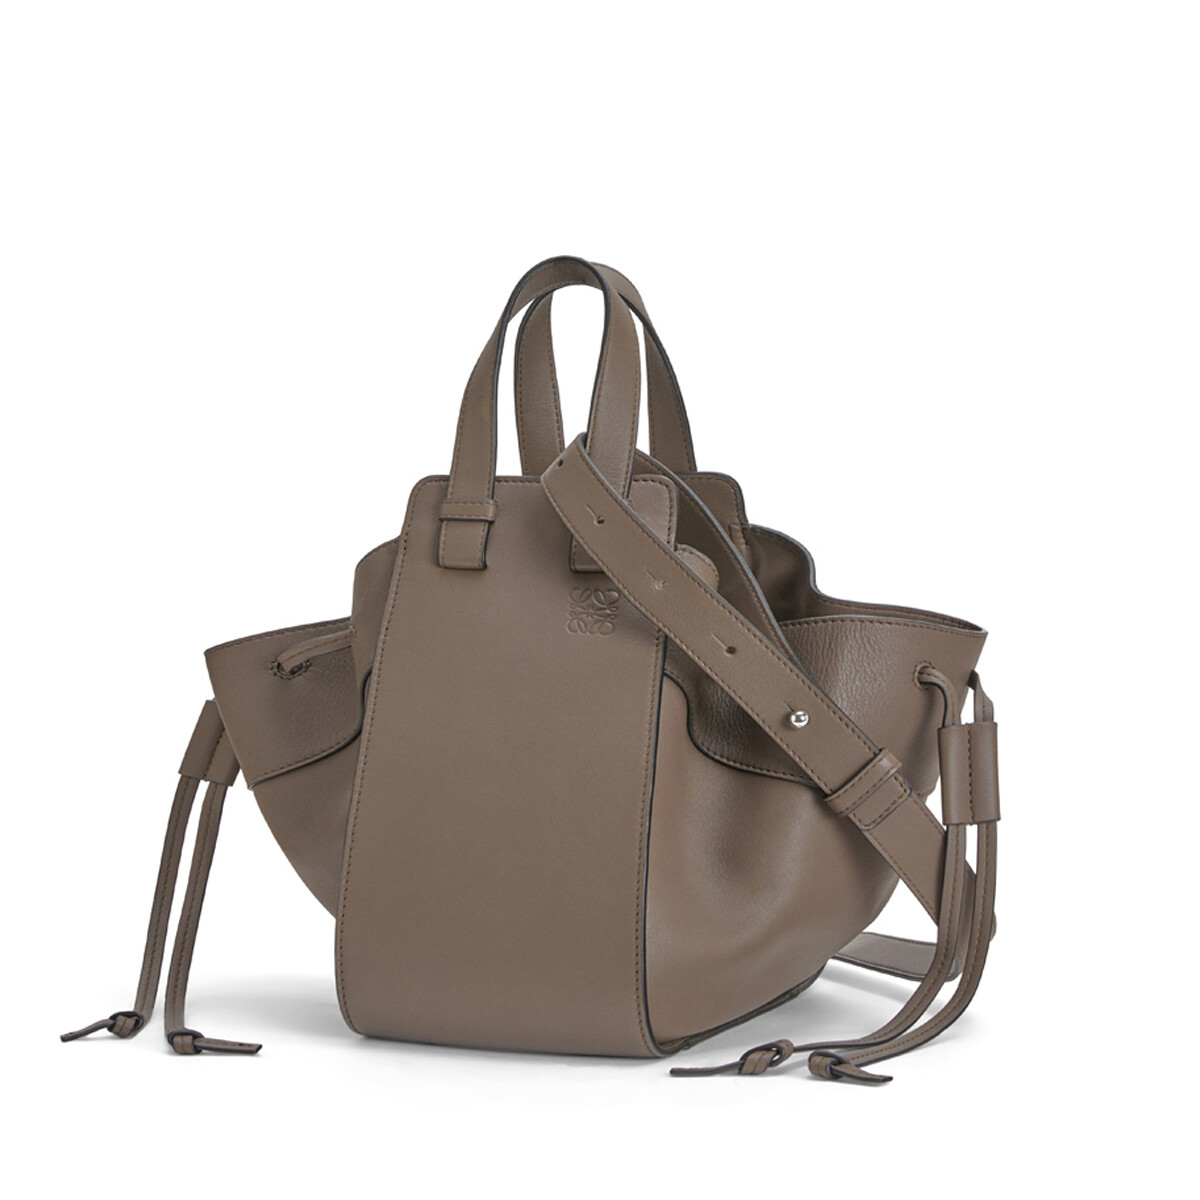 LOEWE Hammock Drawstring Small Bag Dark Taupe front